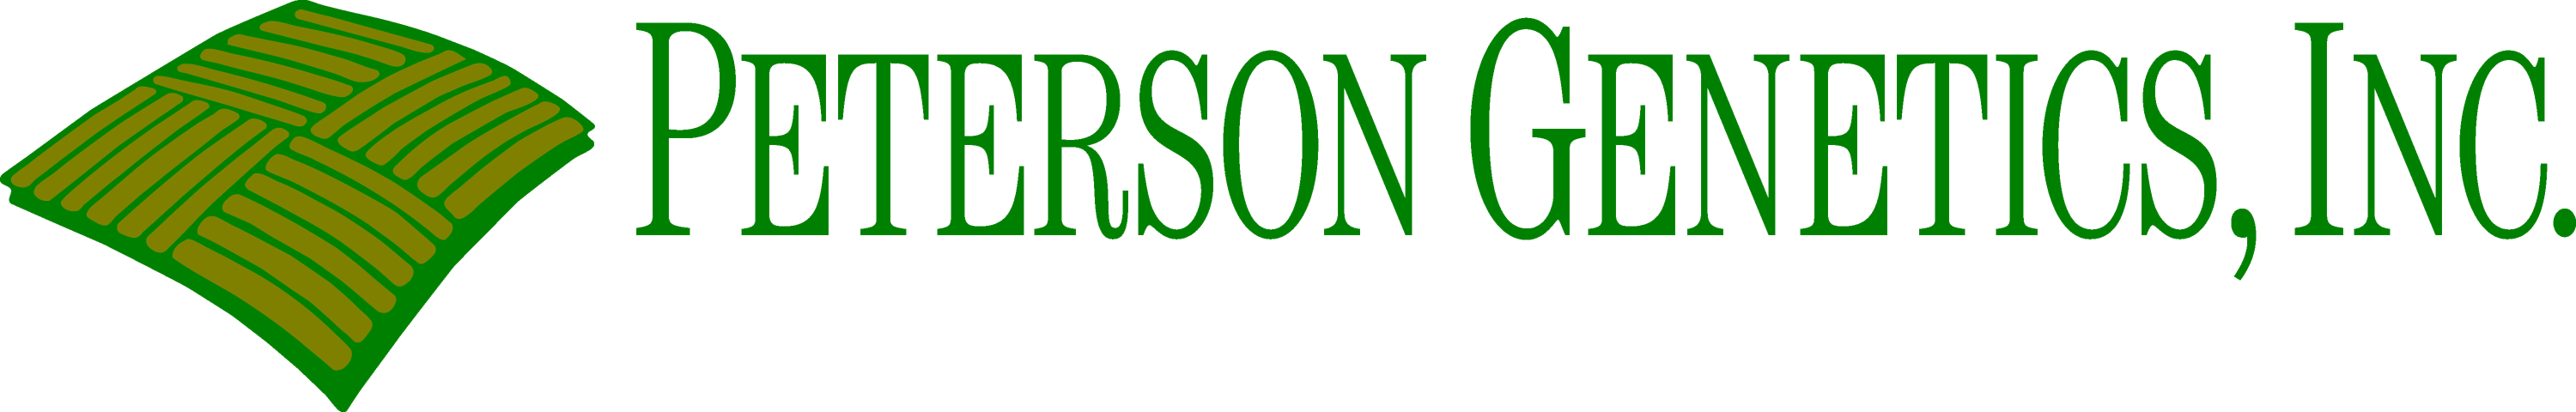 Peterson Genetics Inc.